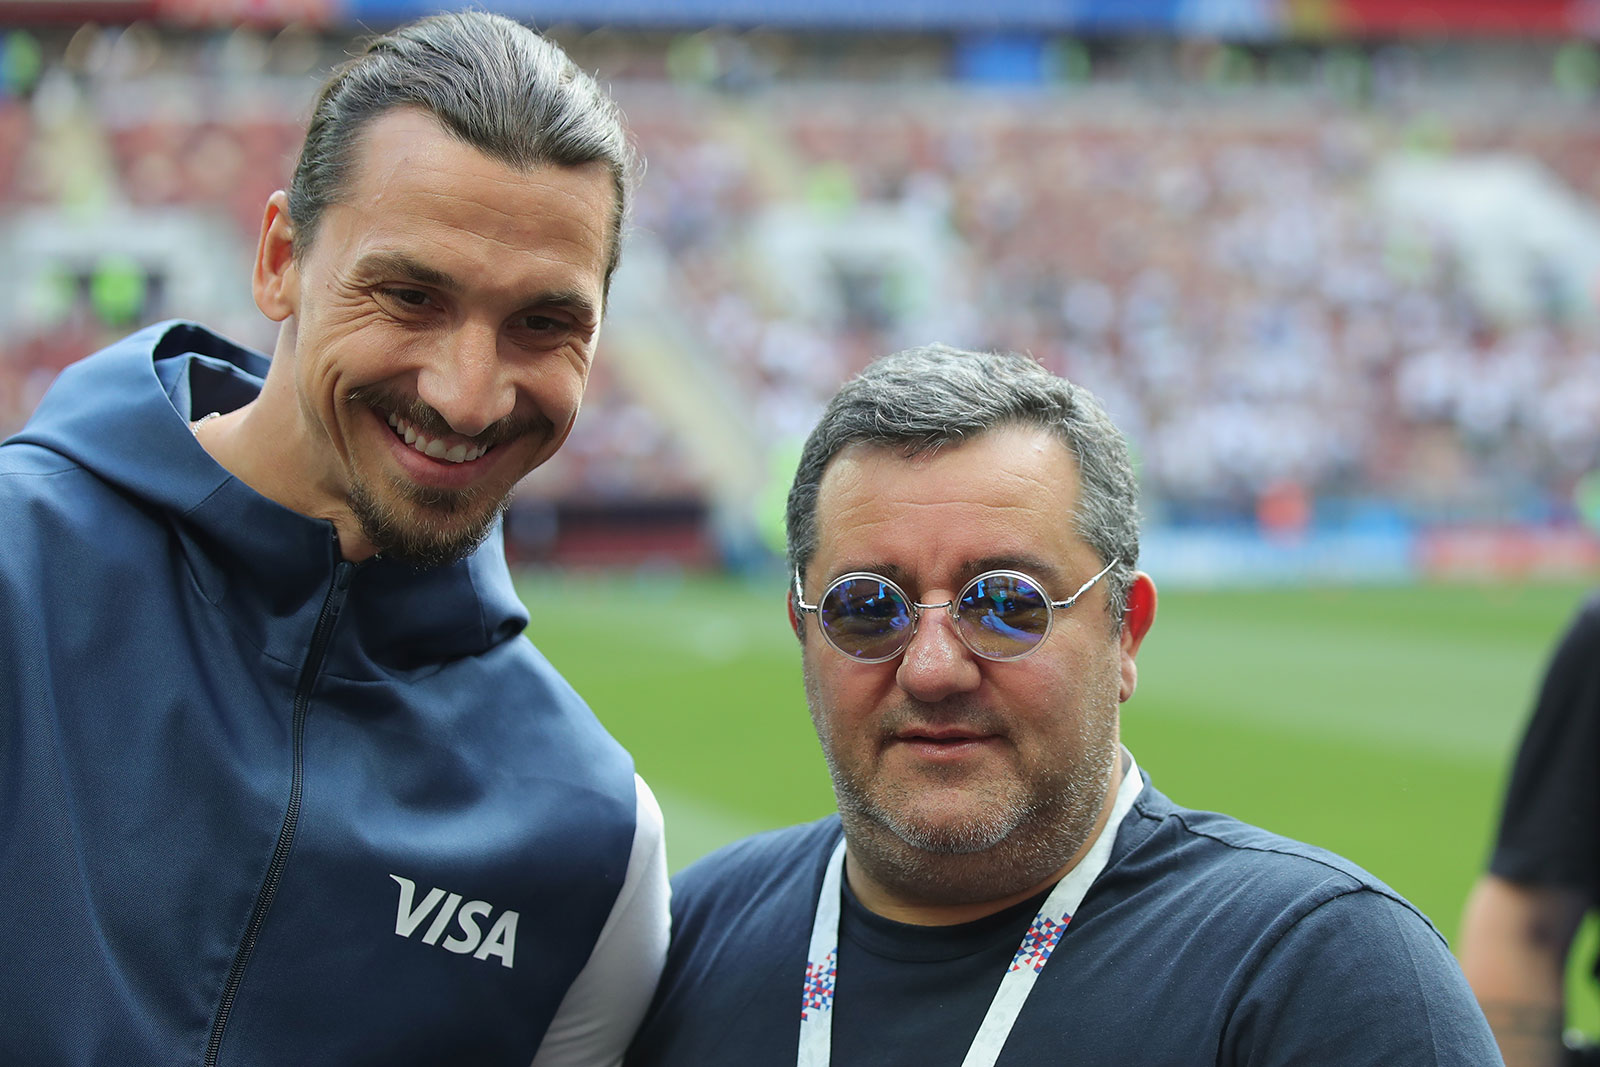 Zlatan Ibrahimović and Mino Raiola before the Germany-Mexico 2018 FIFA World Cup match at Luzhniki Stadium on June 17, 2018. (Photo by Alexander Hassenstein/Getty Images)